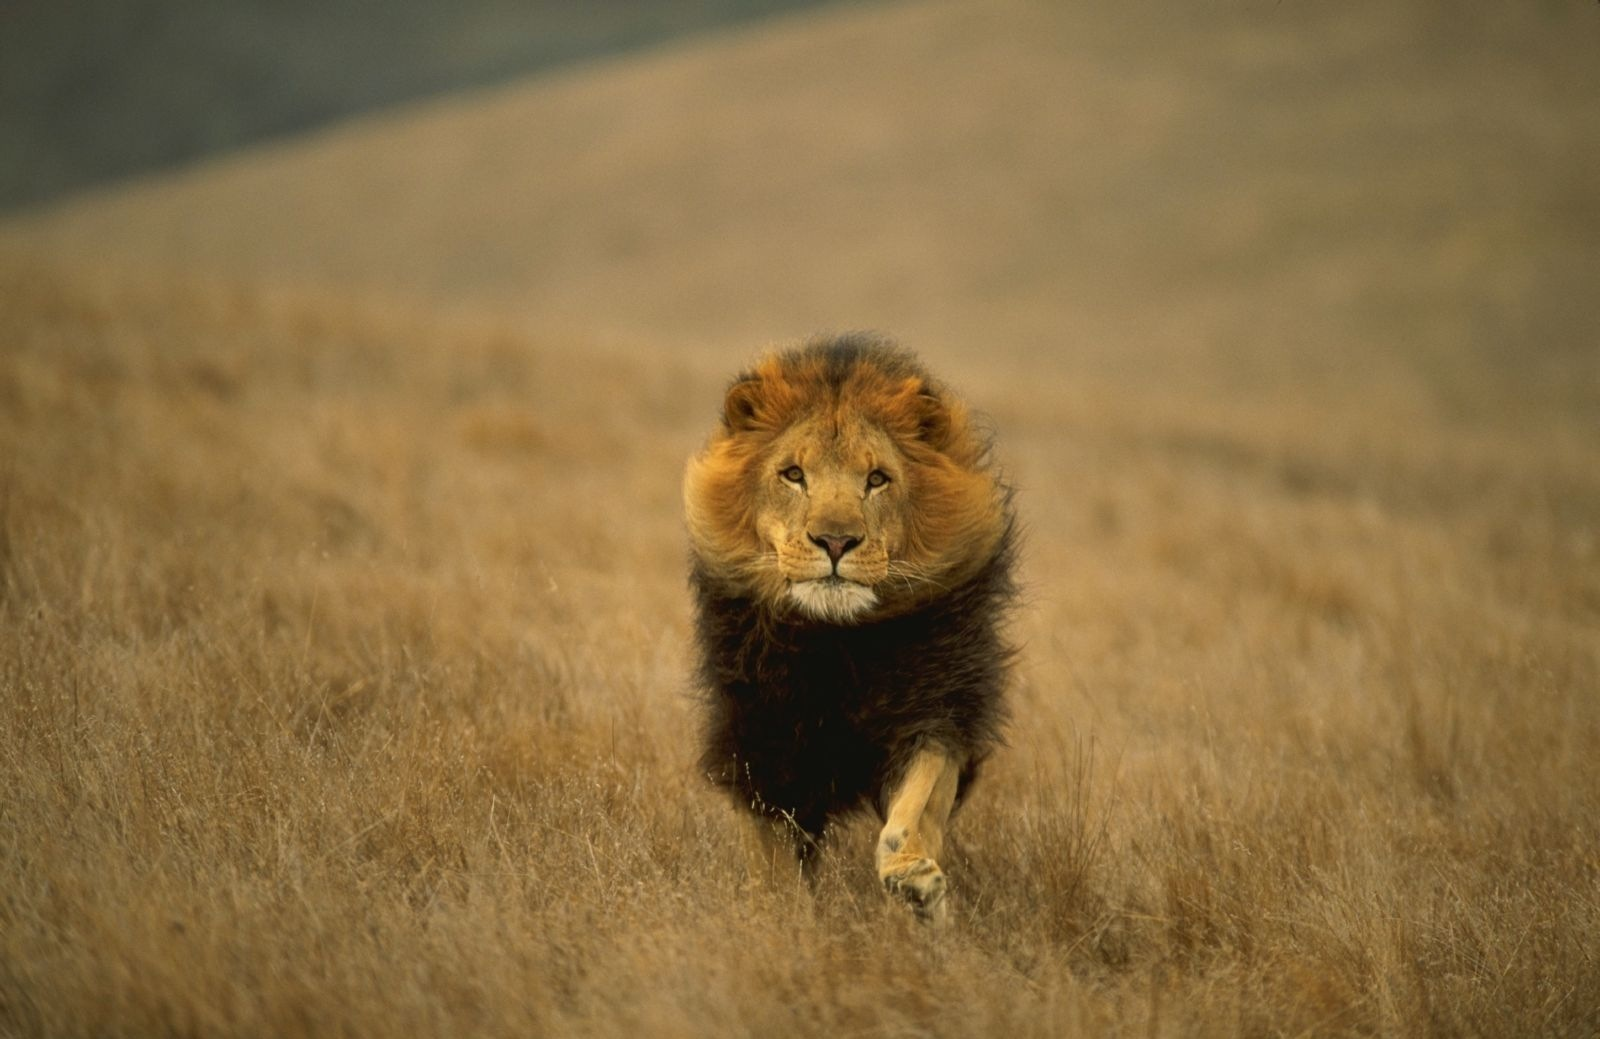 lion wallpaper and background image | 1600x1039 | id:168027